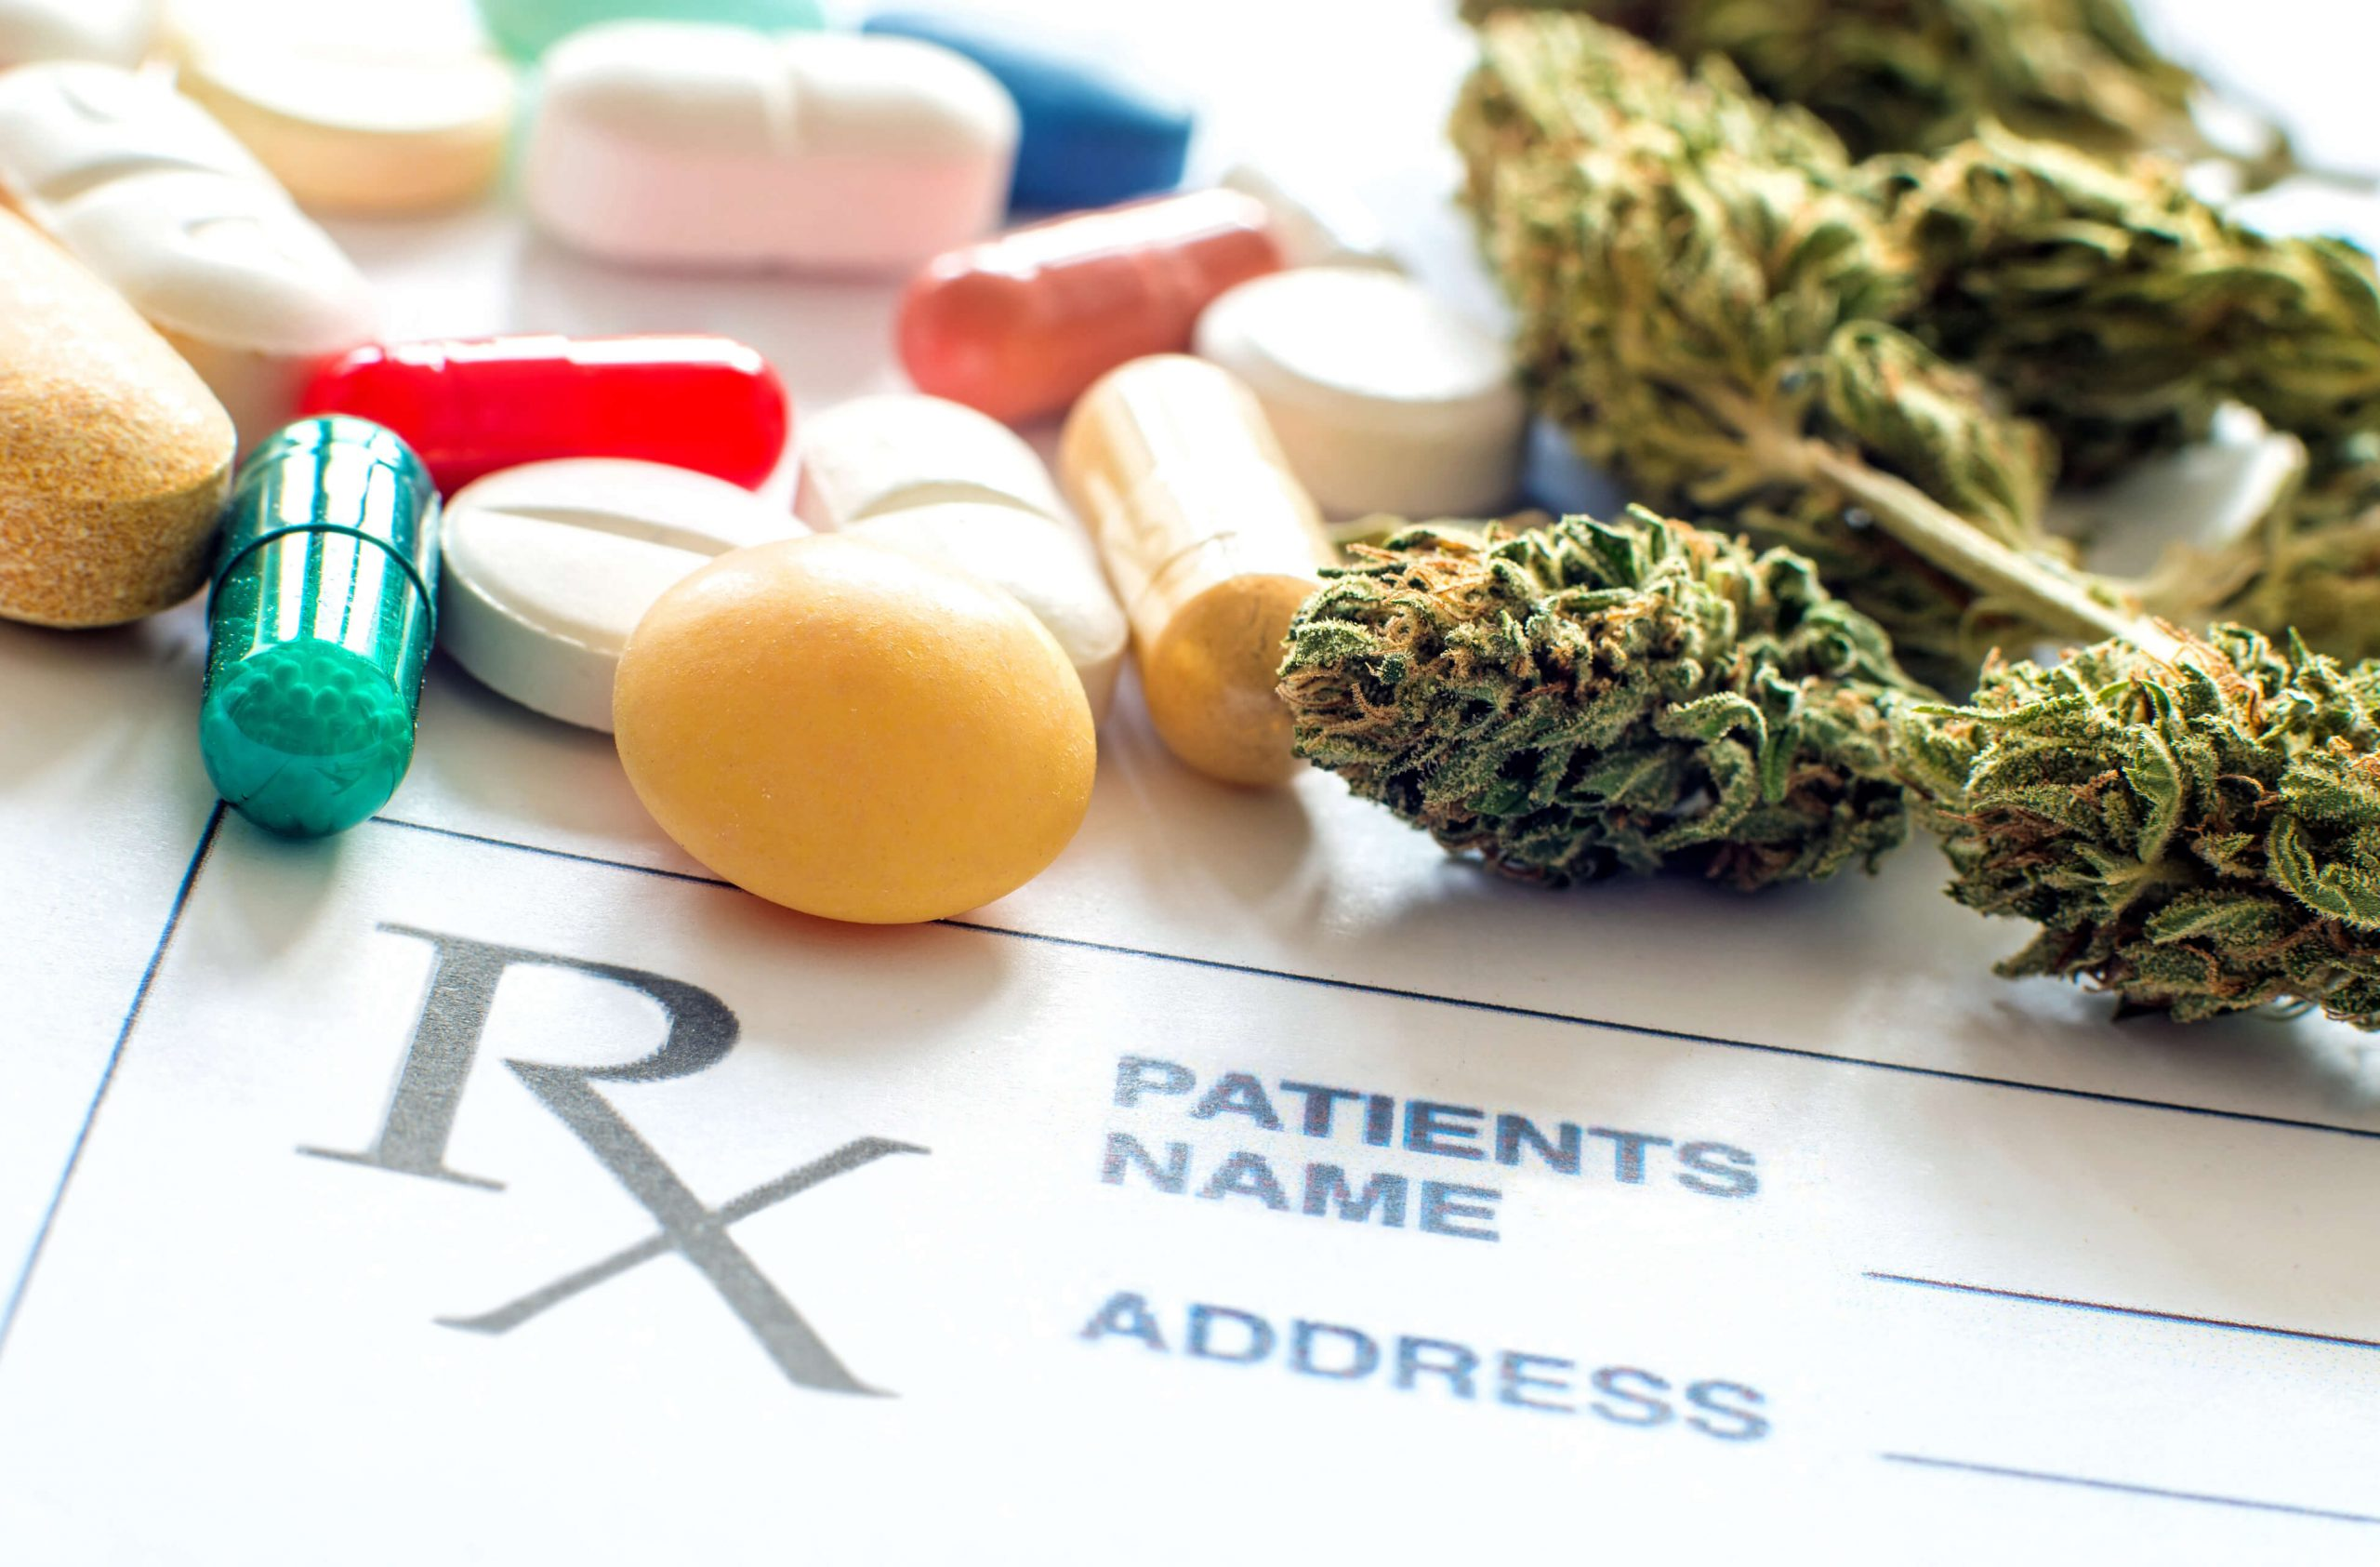 Using accident benefits to access medical cannabis treatment